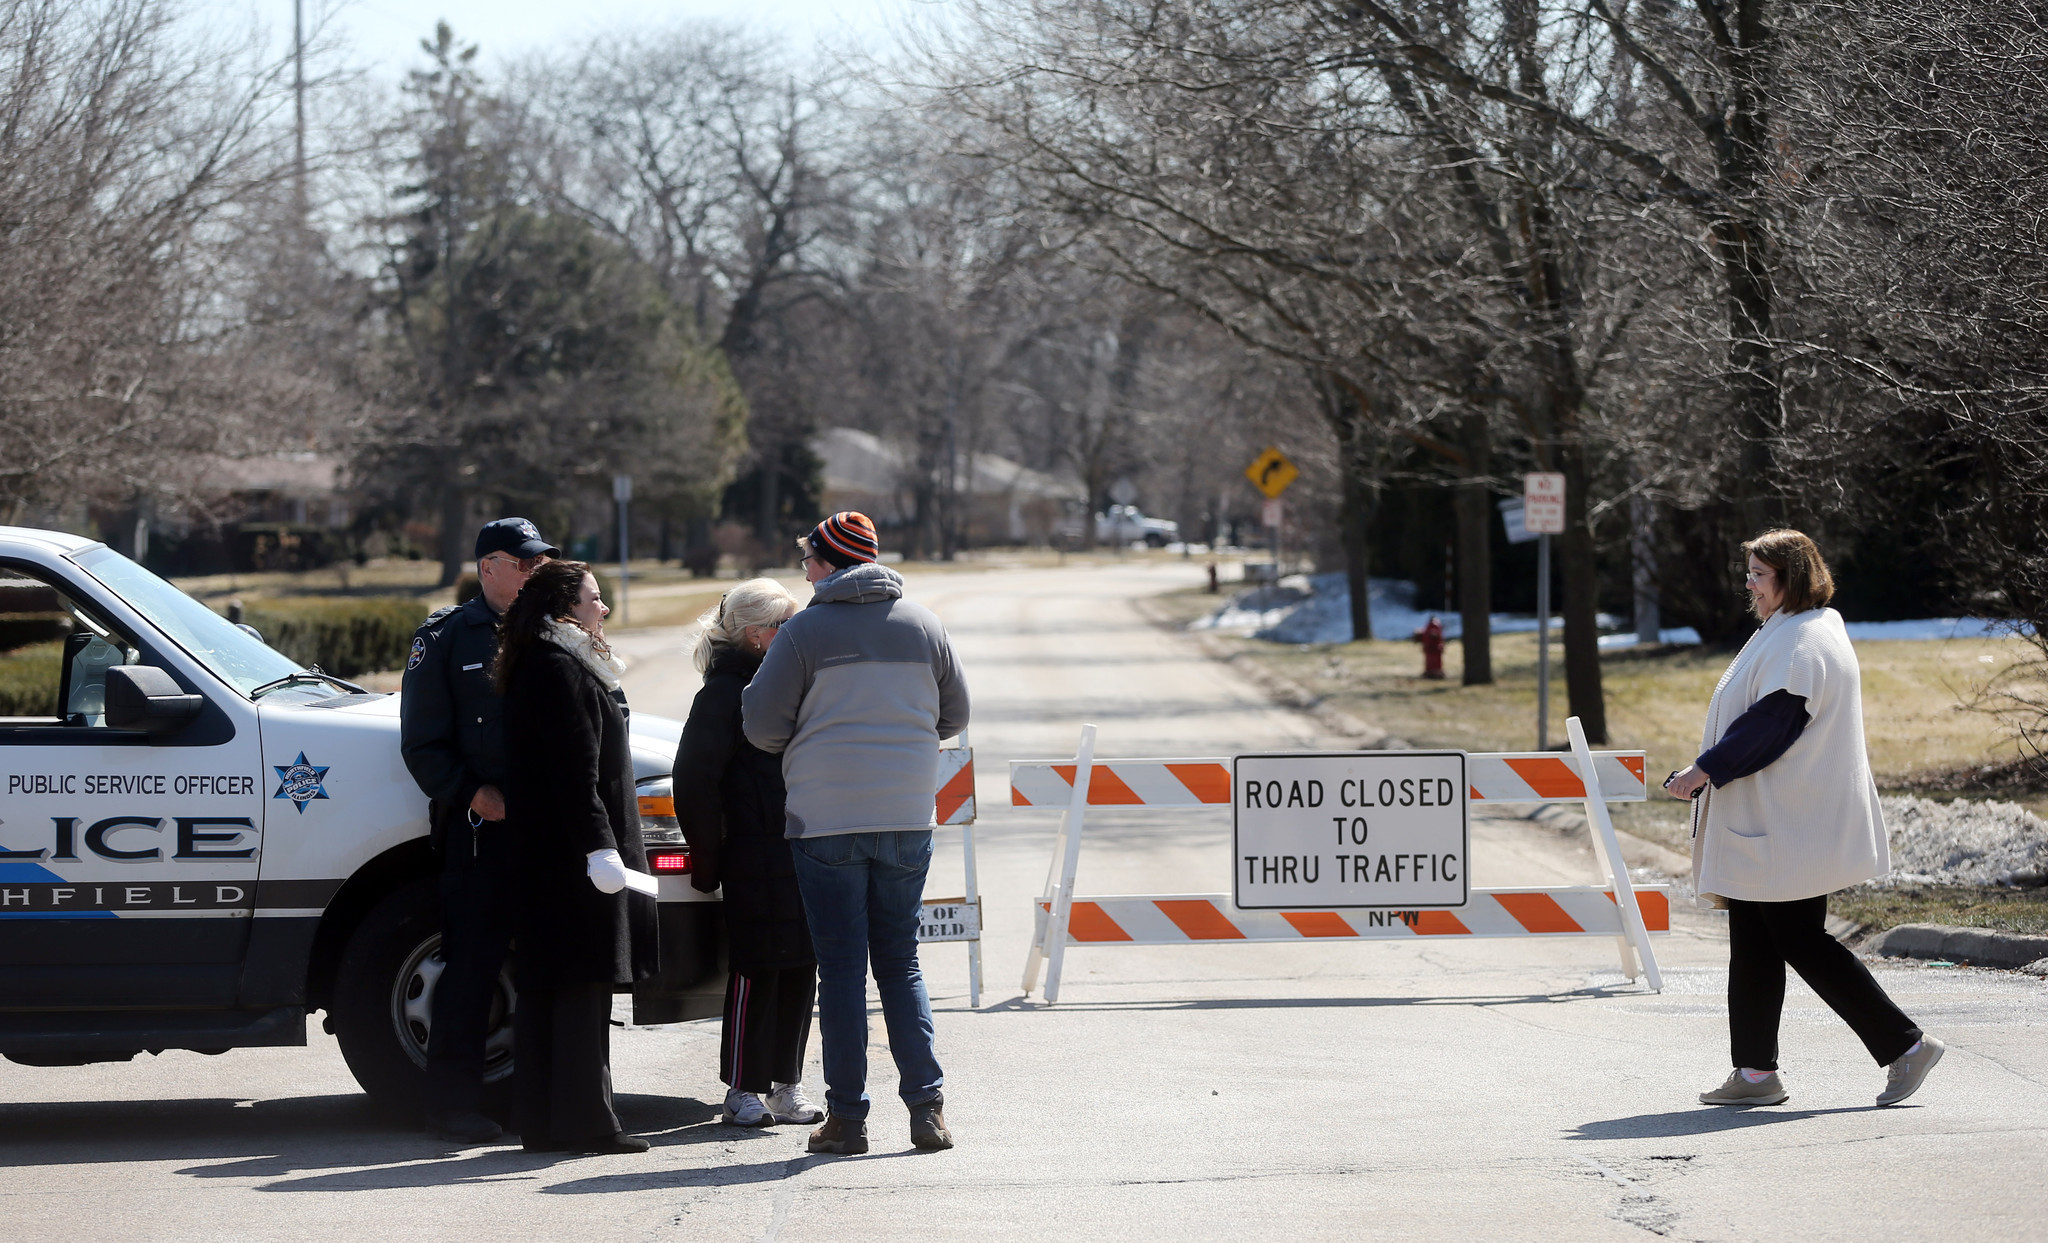 Chief Keef's manager's home site of Northfield shooting - Winnetka Talk